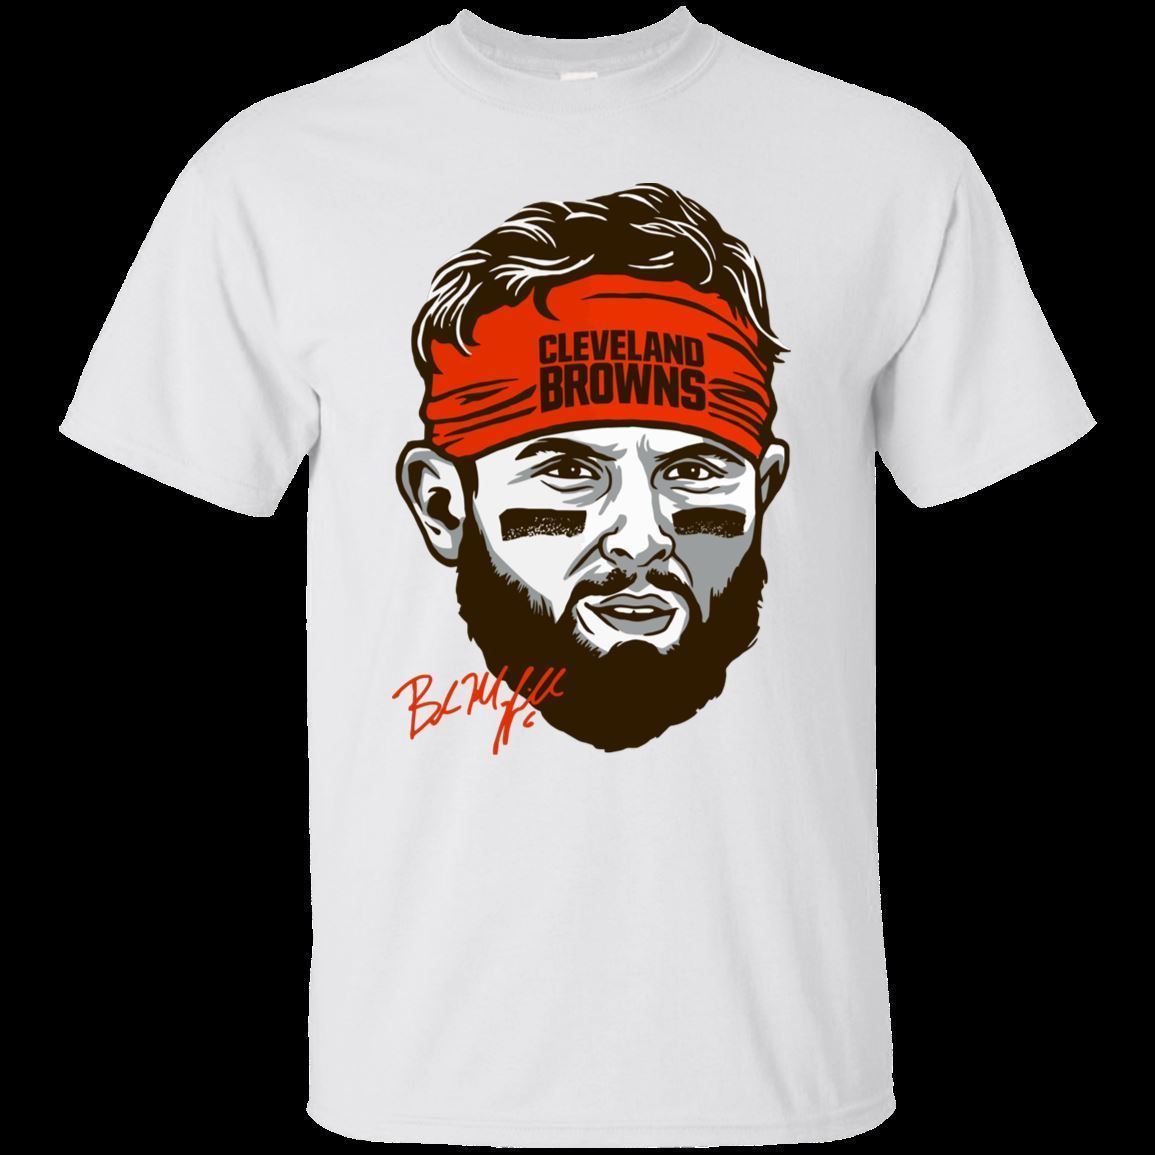 d5434d8b5 Buy baker t shirts and get free shipping on AliExpress.com